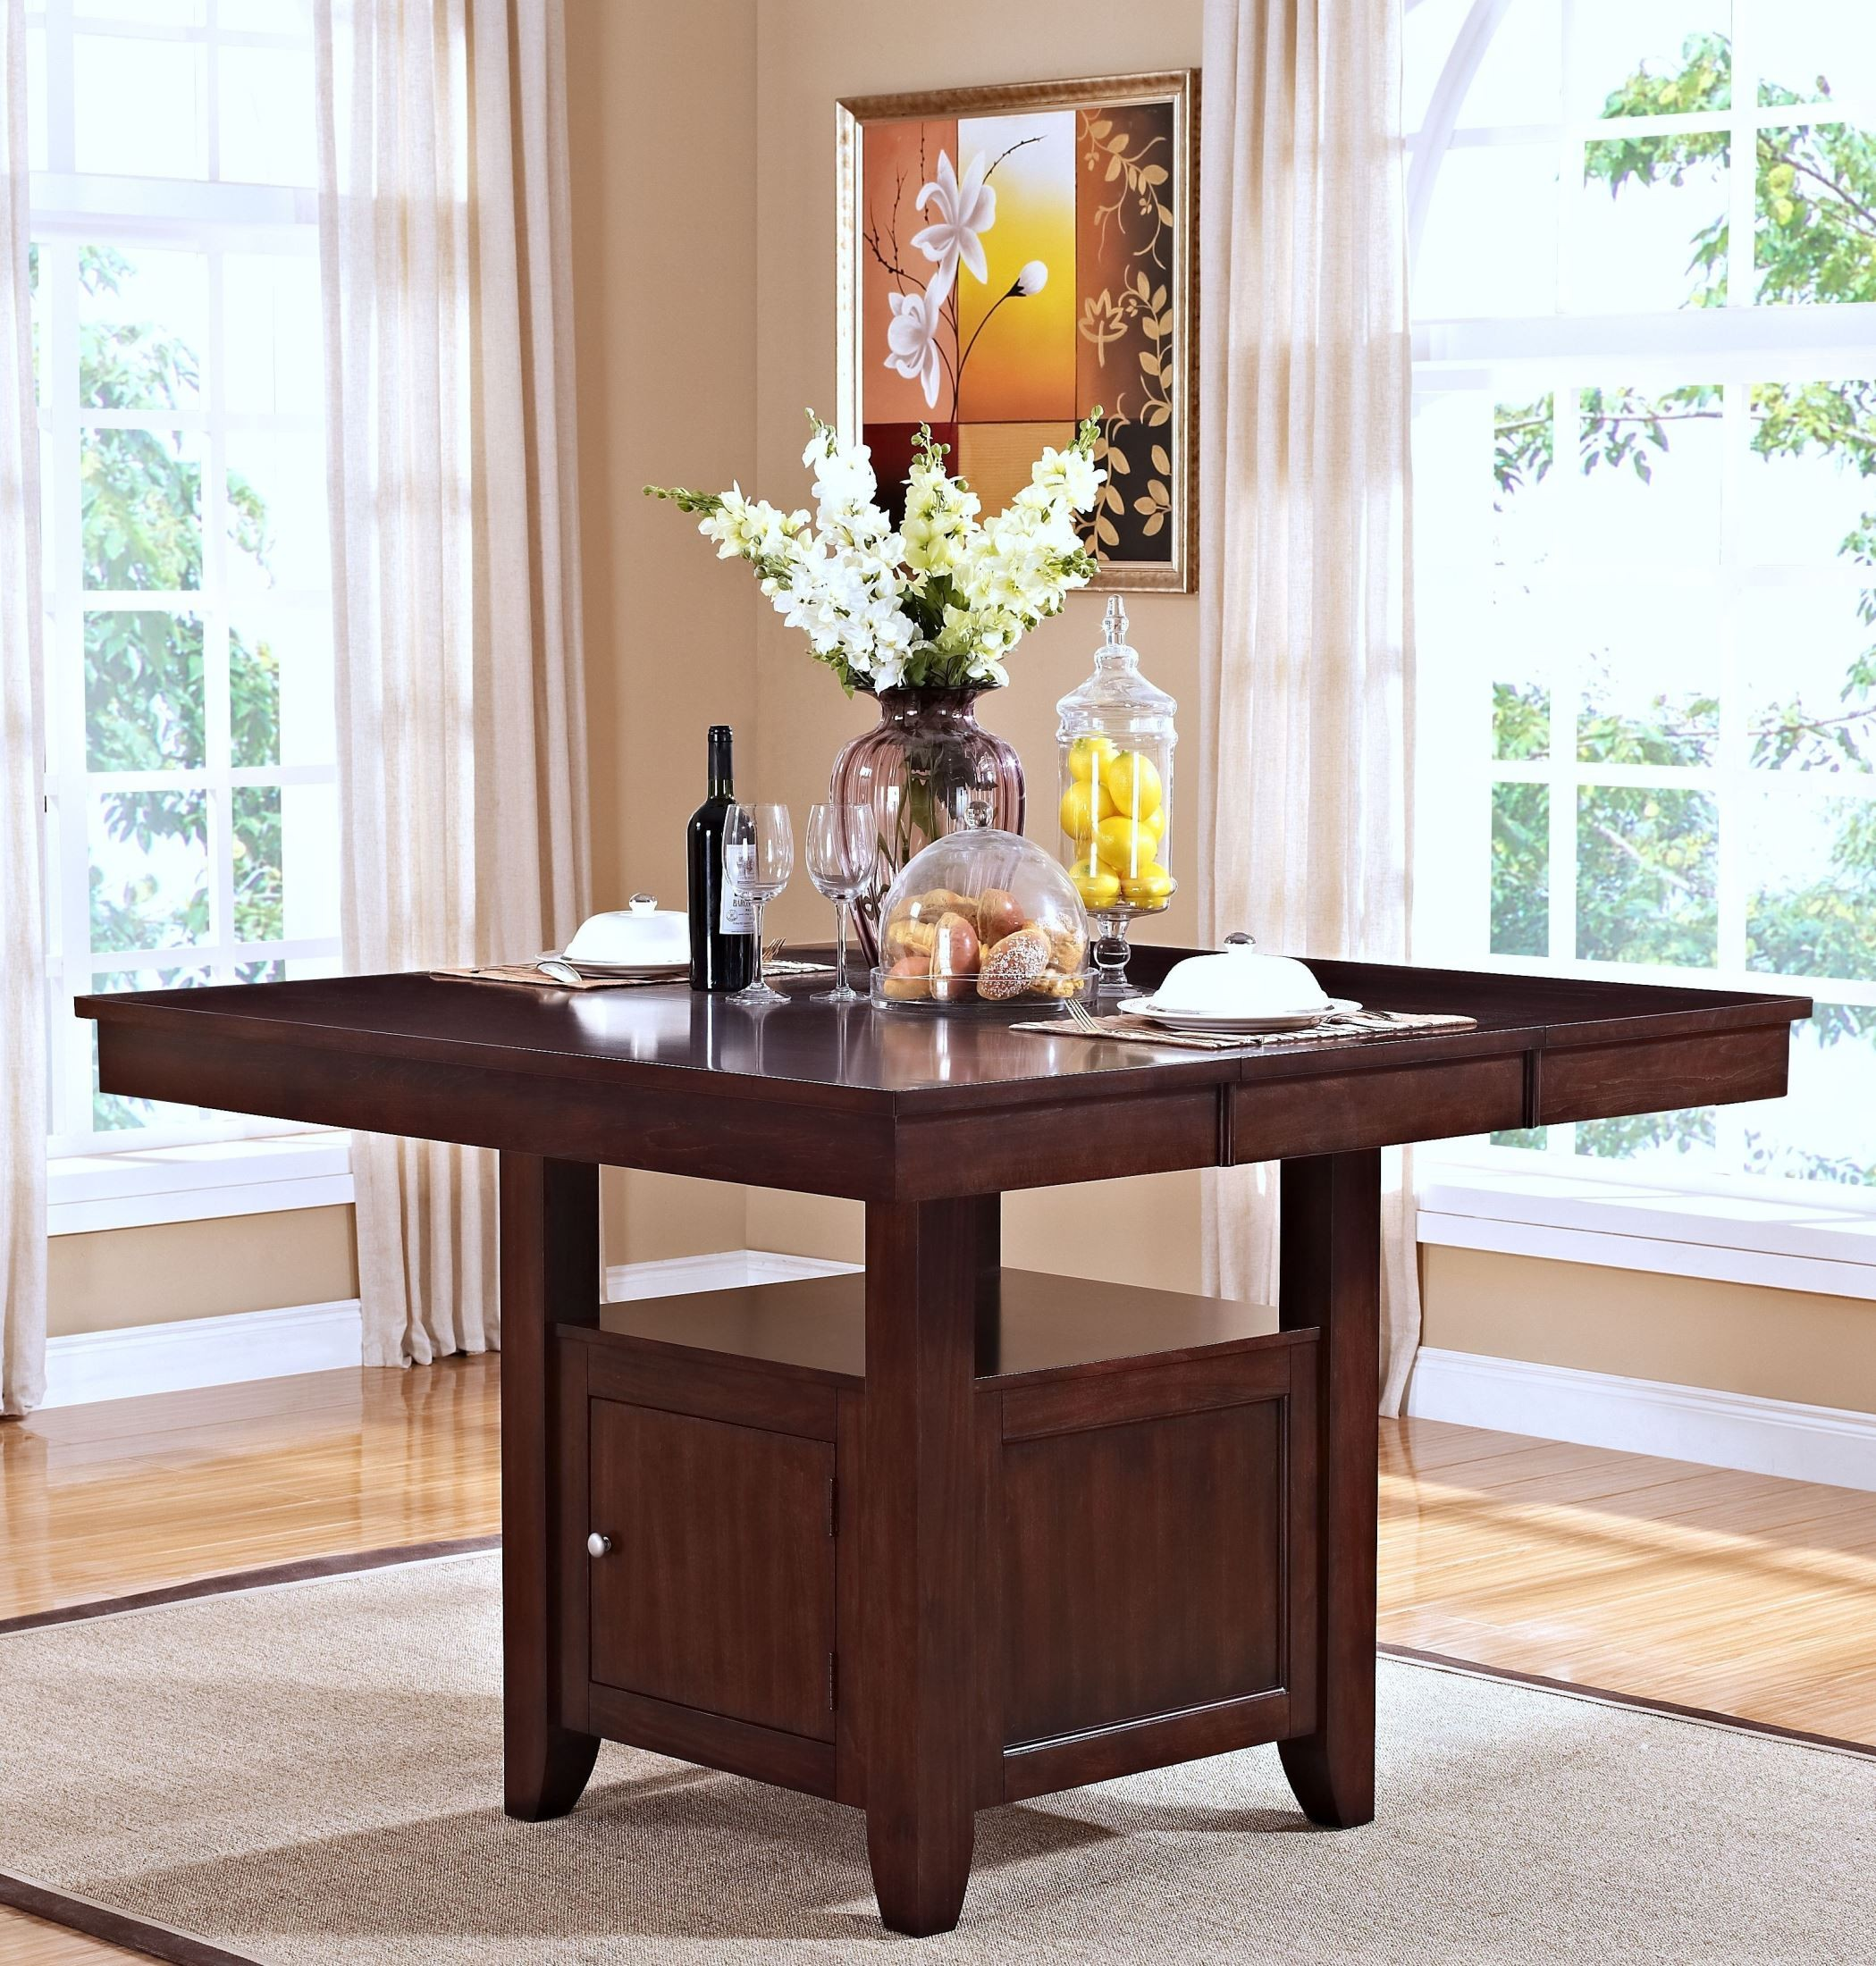 Kaylee Tudor Counter Height Storage Table From New